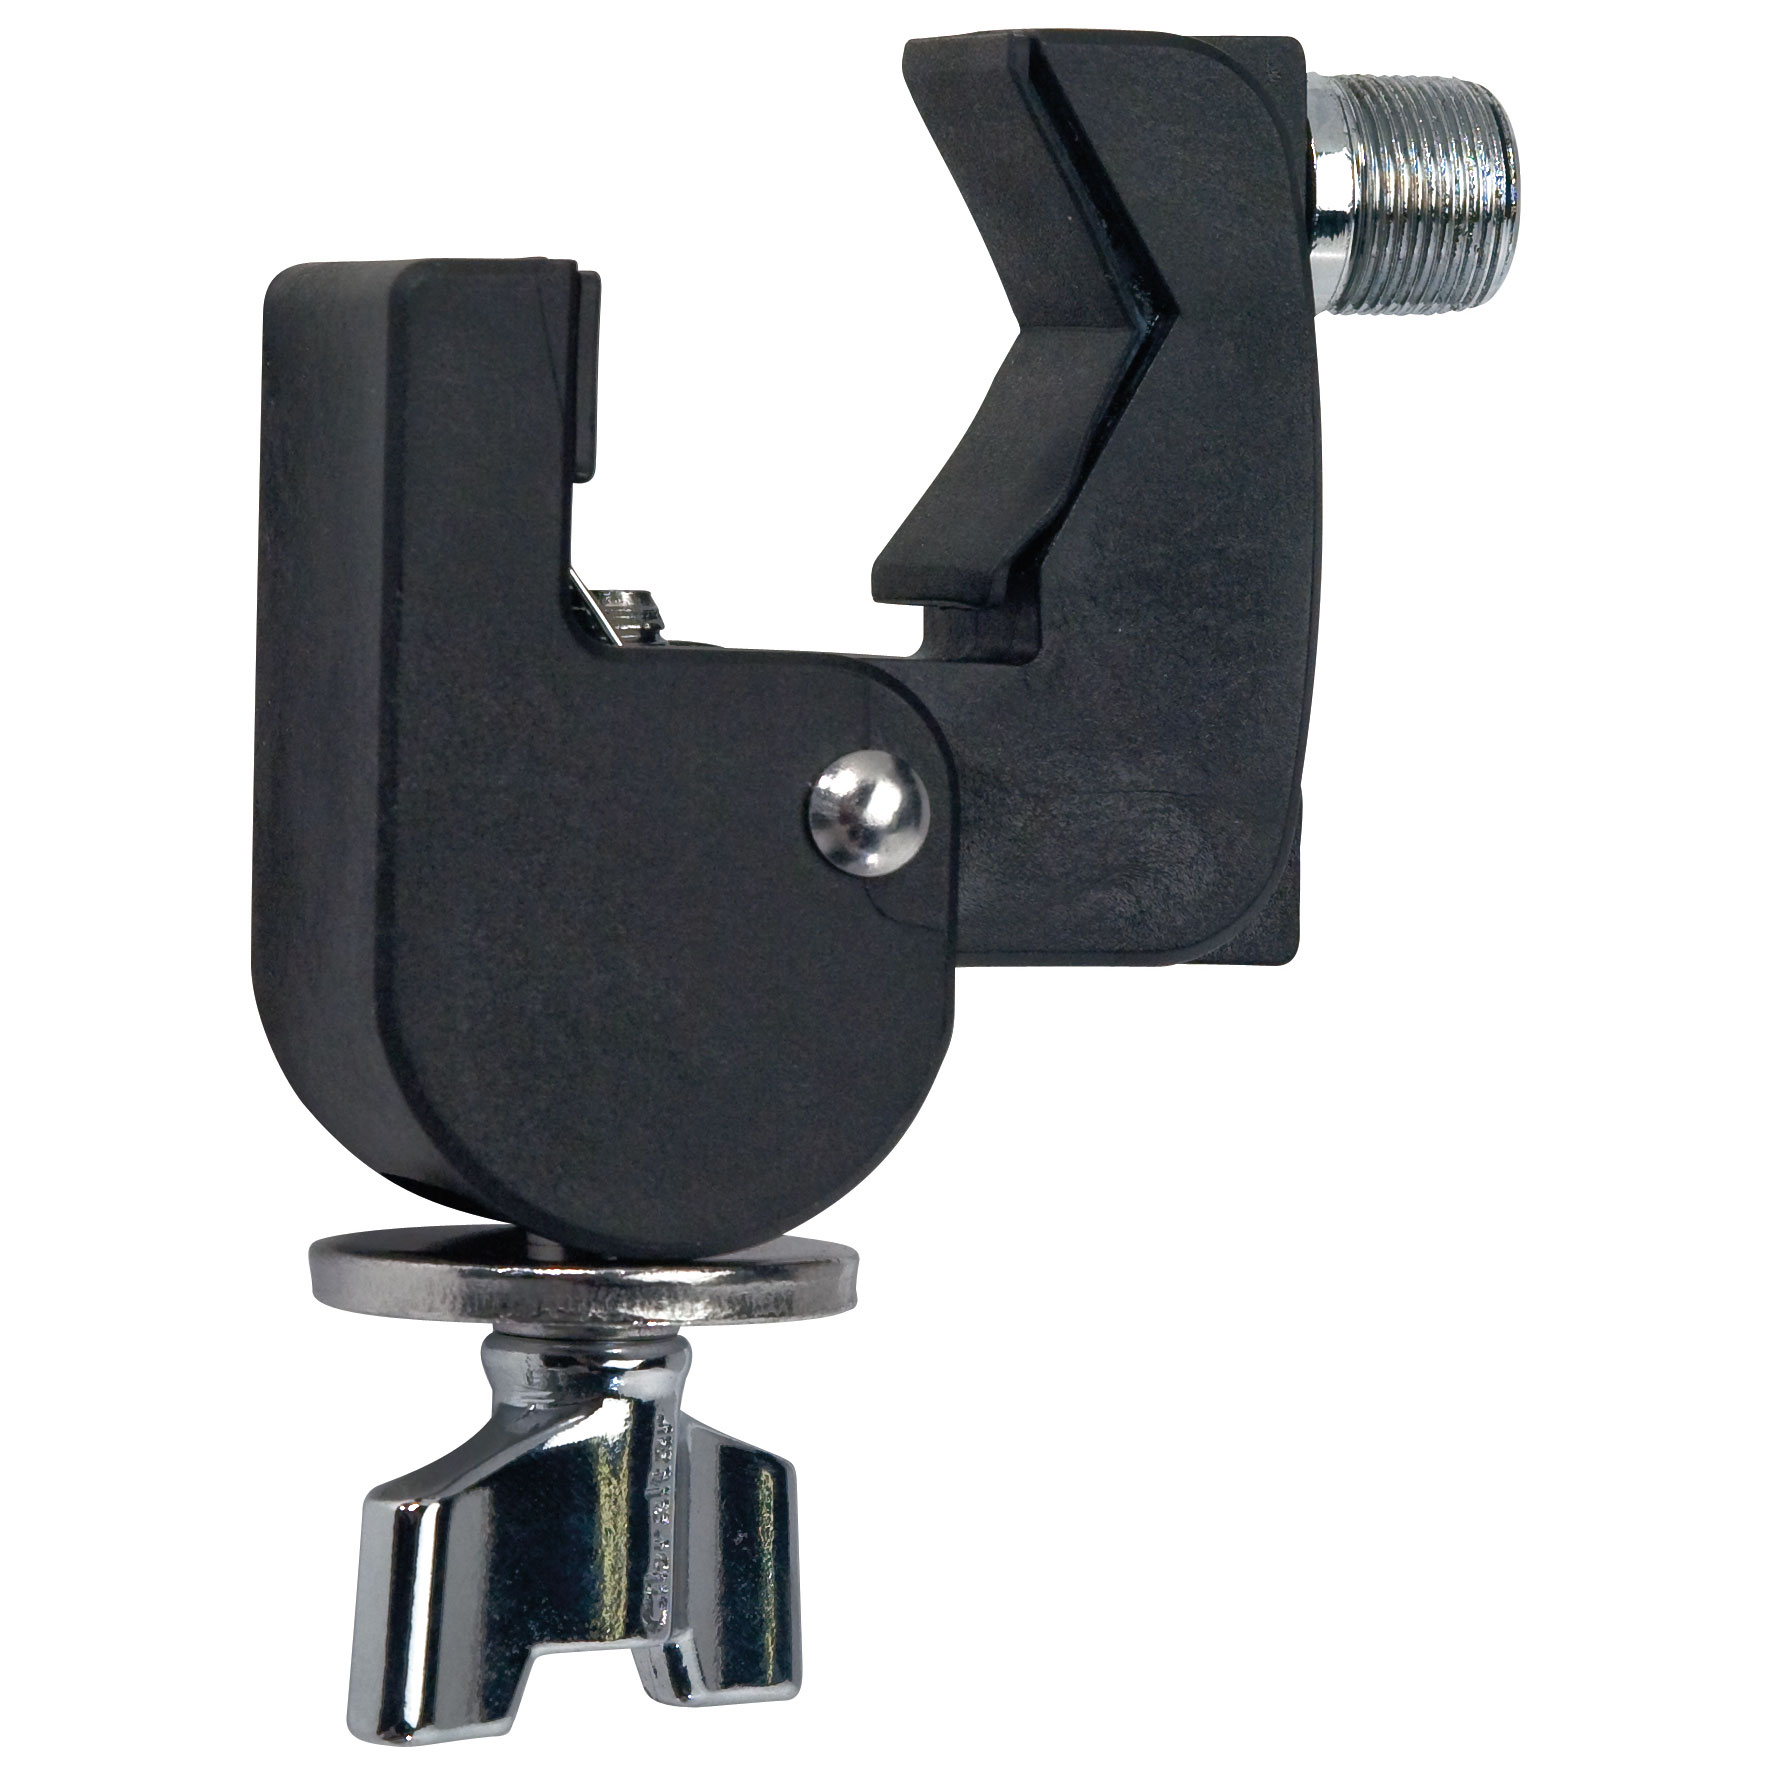 Gibraltar Multi Mount Microphone Attachment Clamp